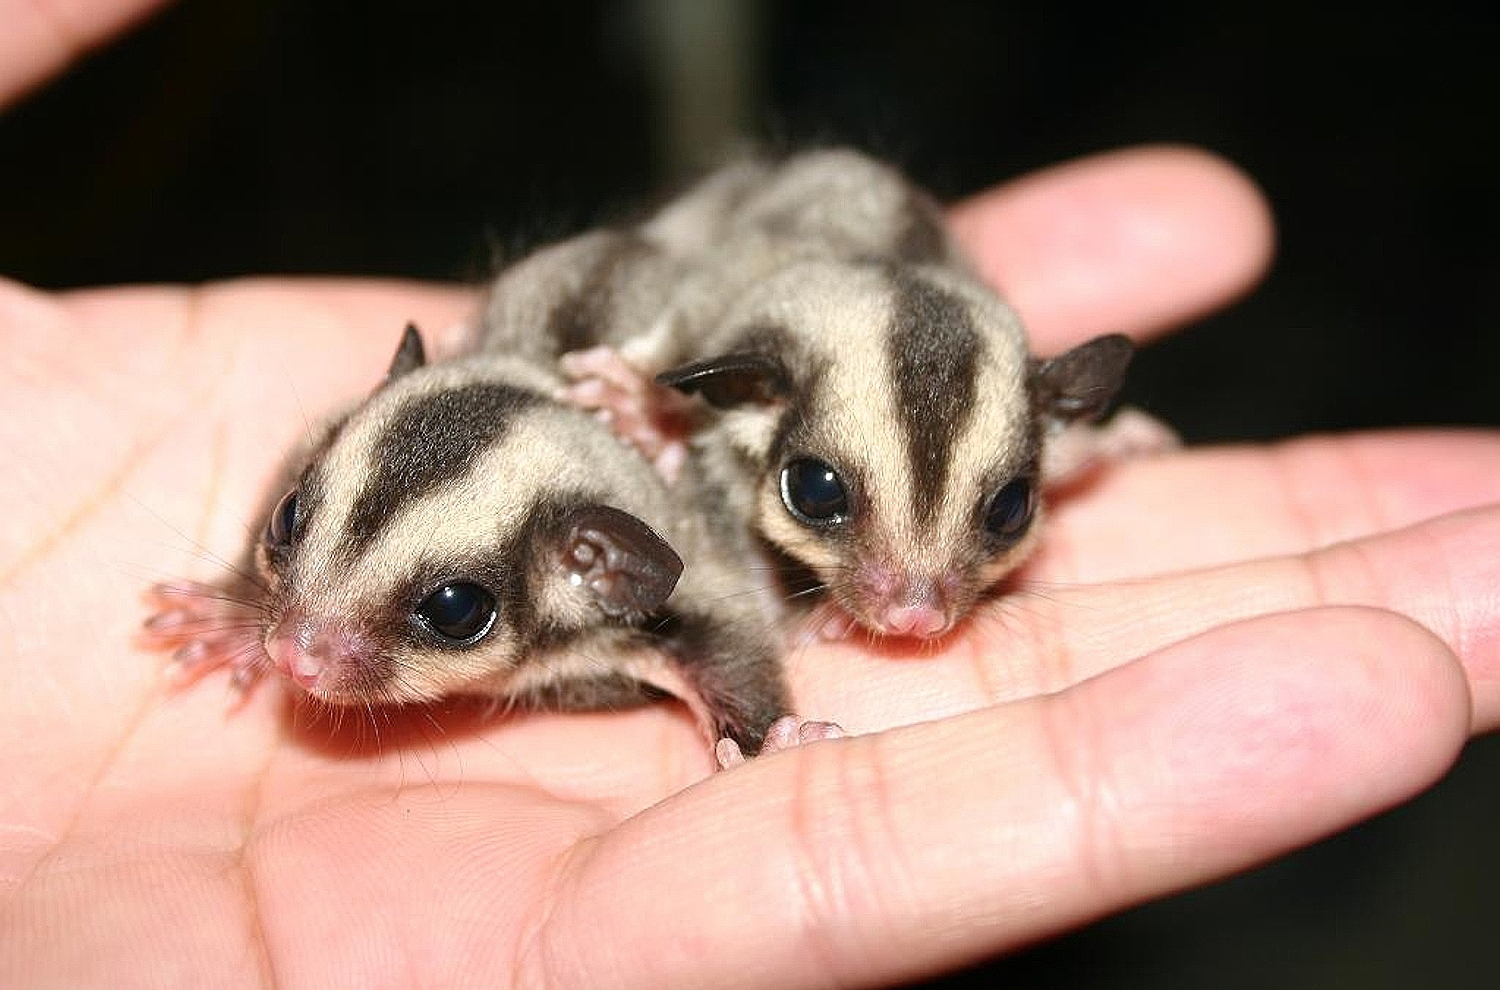 sugar gliders Pet sugar gliders for sale, mosaic sugar gliders for sale, pocket pets for sale, suggies for sale, suggies as pets, honey bears for sale, sugar glider breeder, tame, friendly sugar gliders for sale as pets, quality, imprinted and tame sugar gliders, sugar.